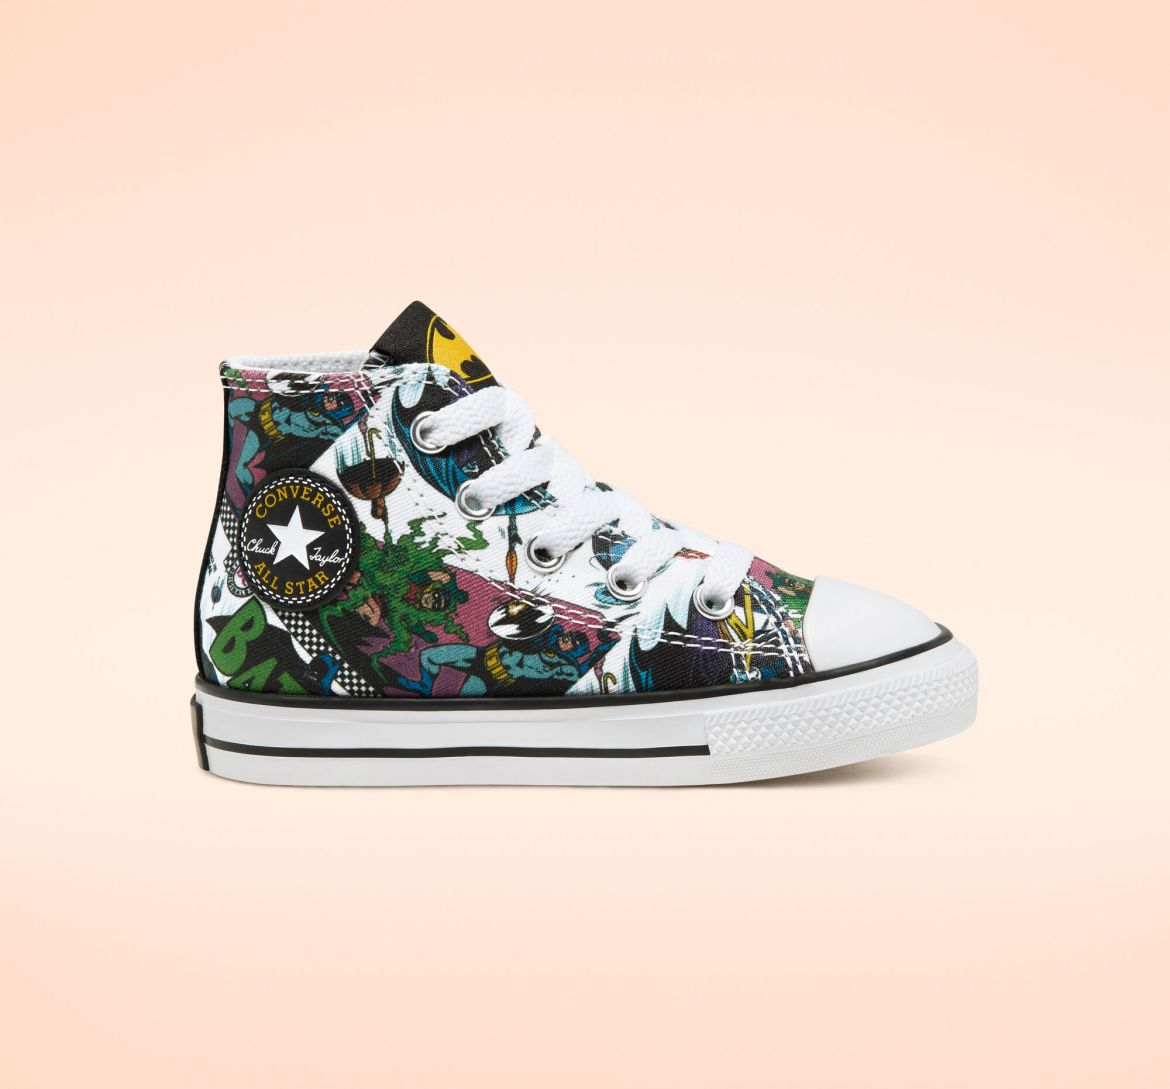 Converse x Batman Chuck Taylor All Star White/Black/Multi